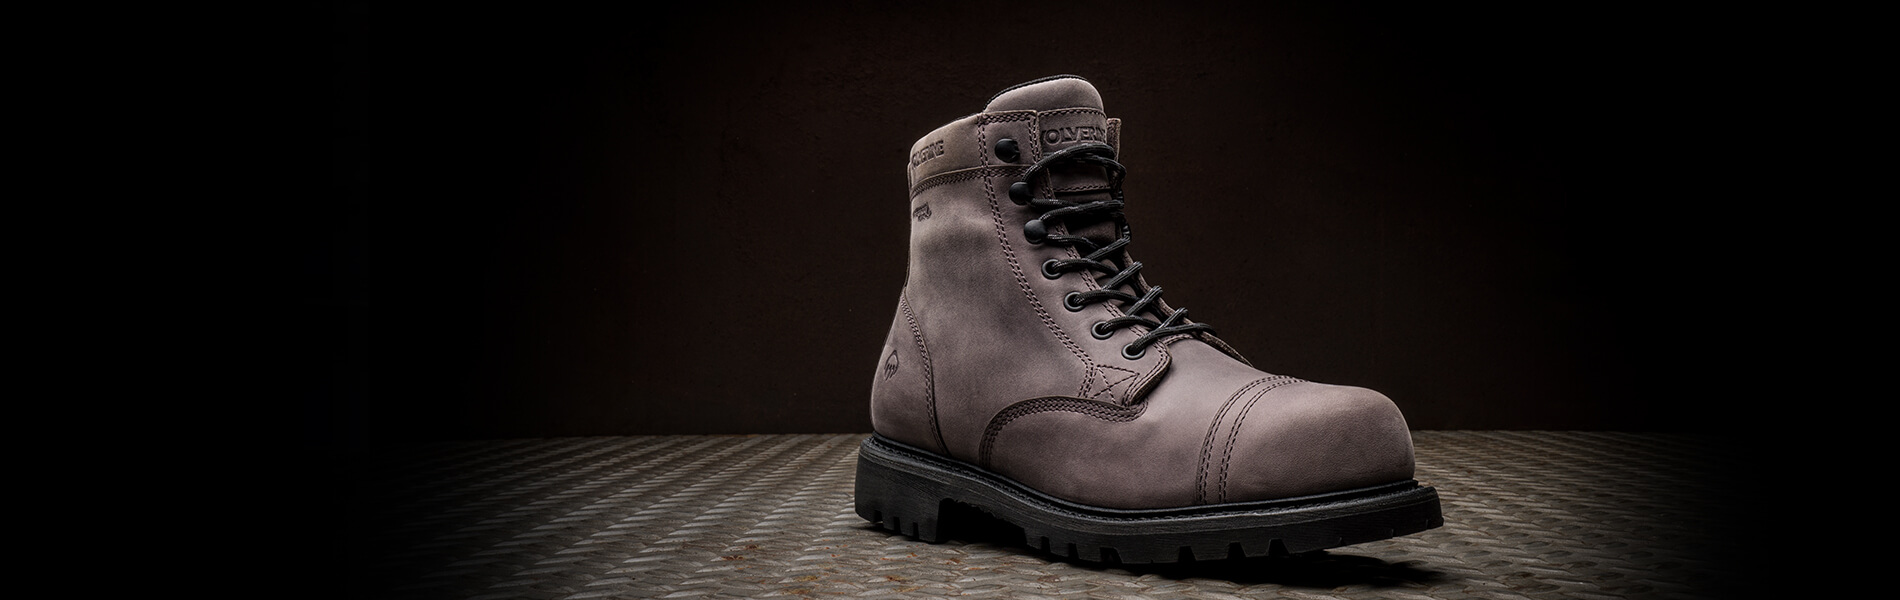 A grey Journeyman boot stands on a reinforced steel platform against a dark background.